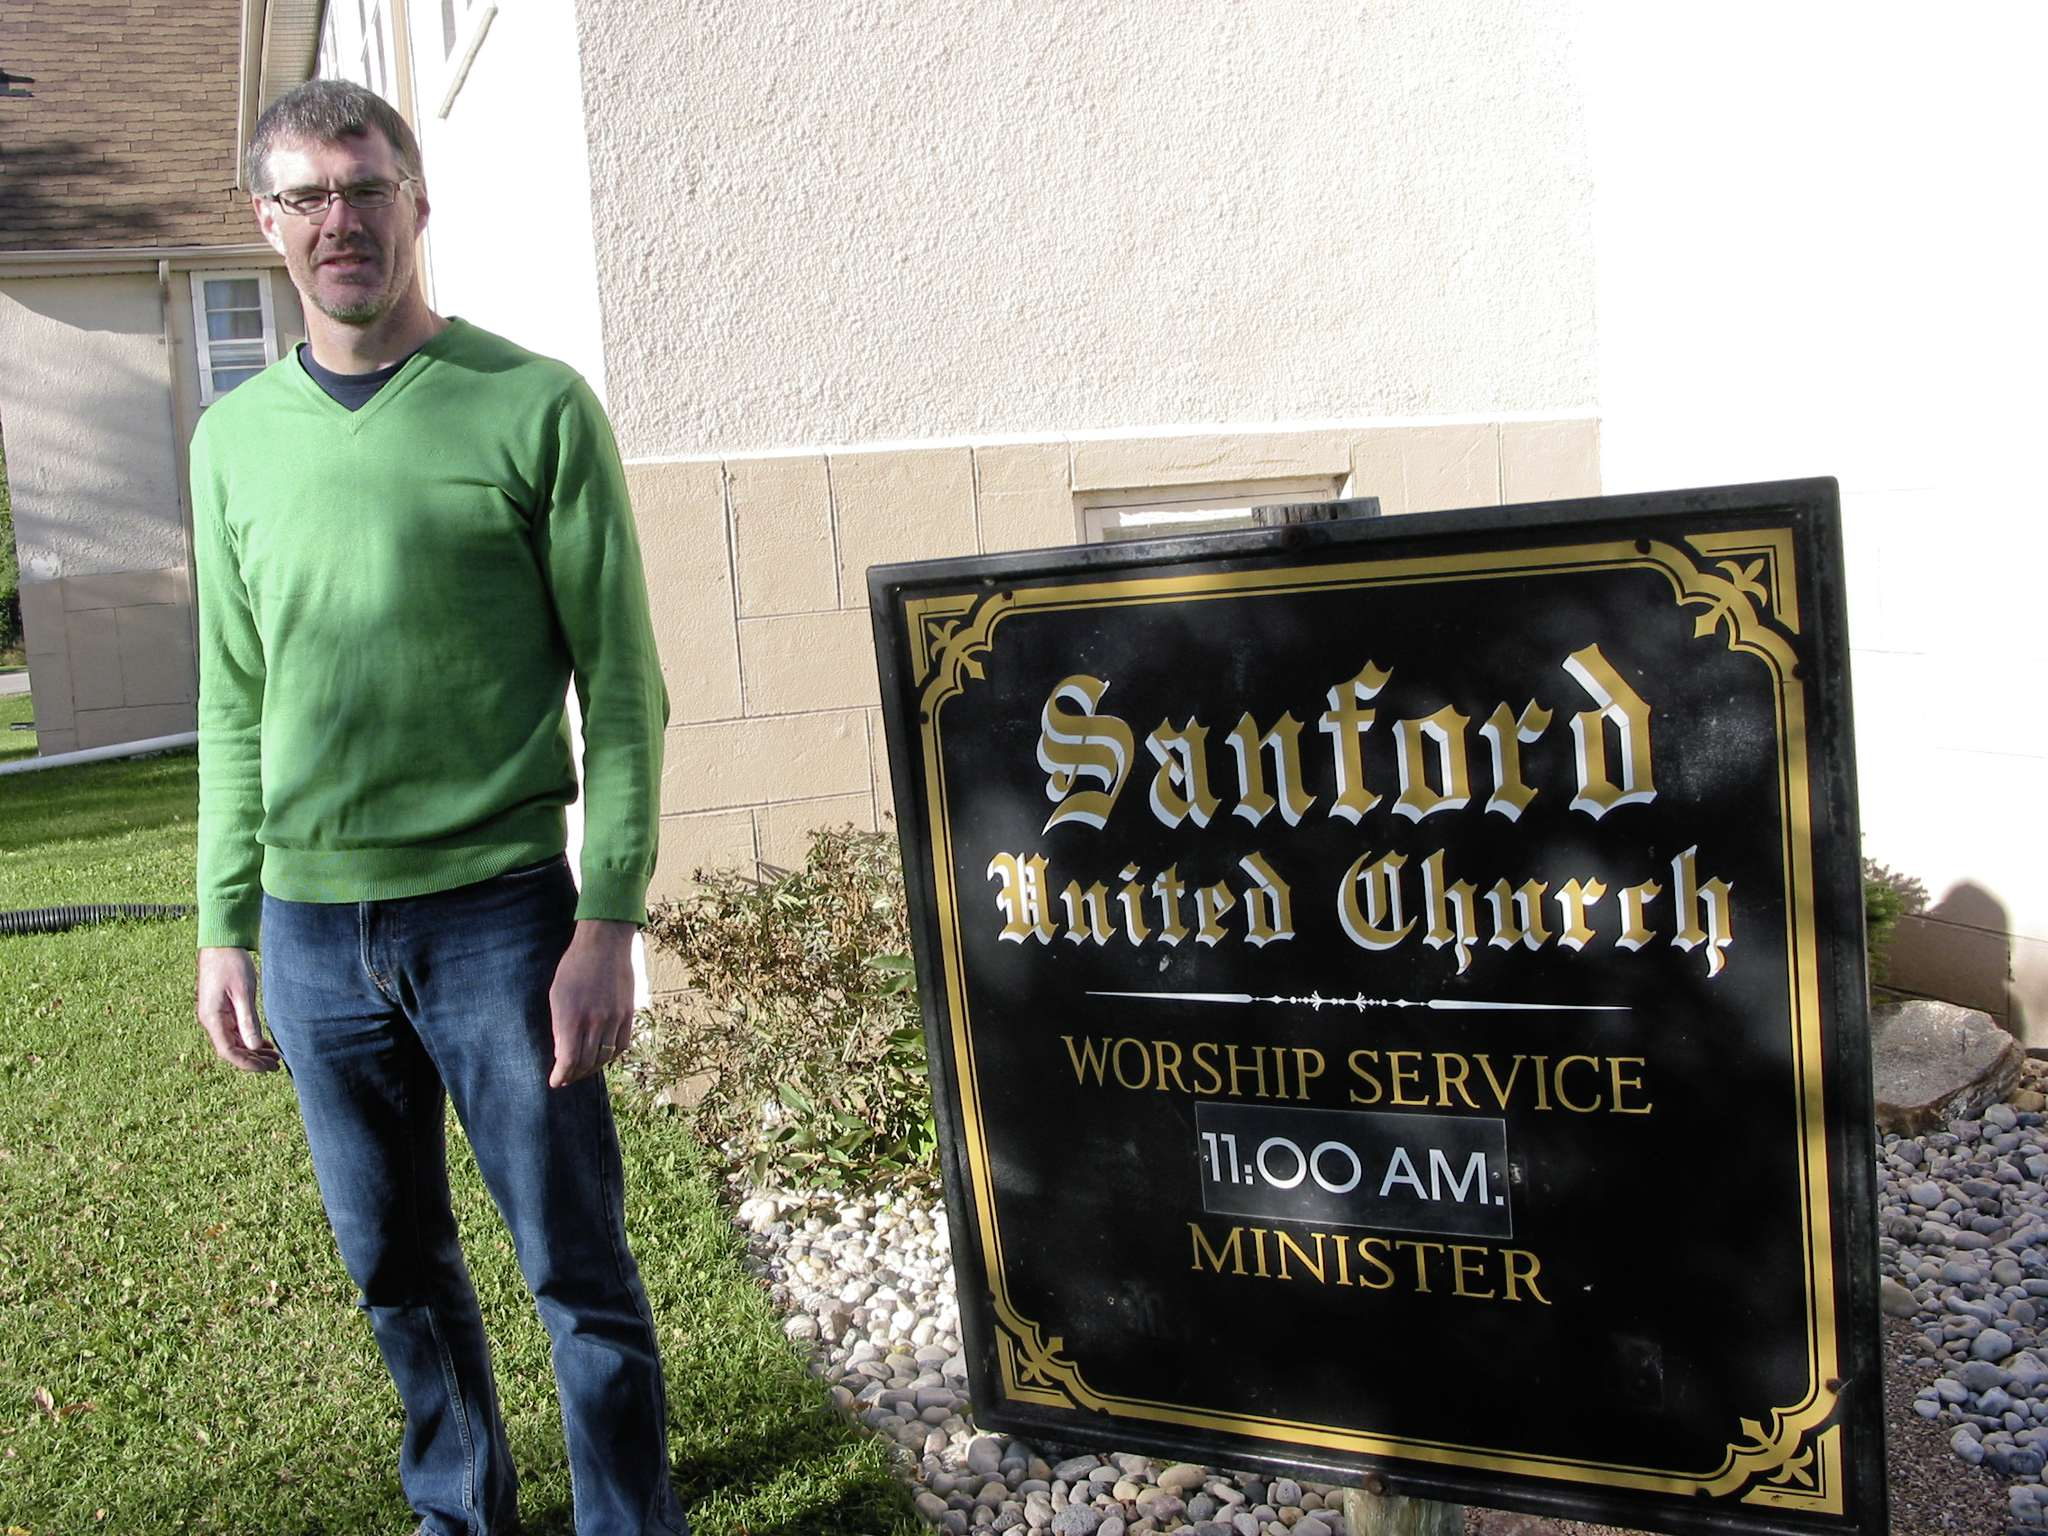 Sanford United Church member Jamie Scharf and wife Onnolee (not pictured) chose to move to Sanford in part because of the community's church.